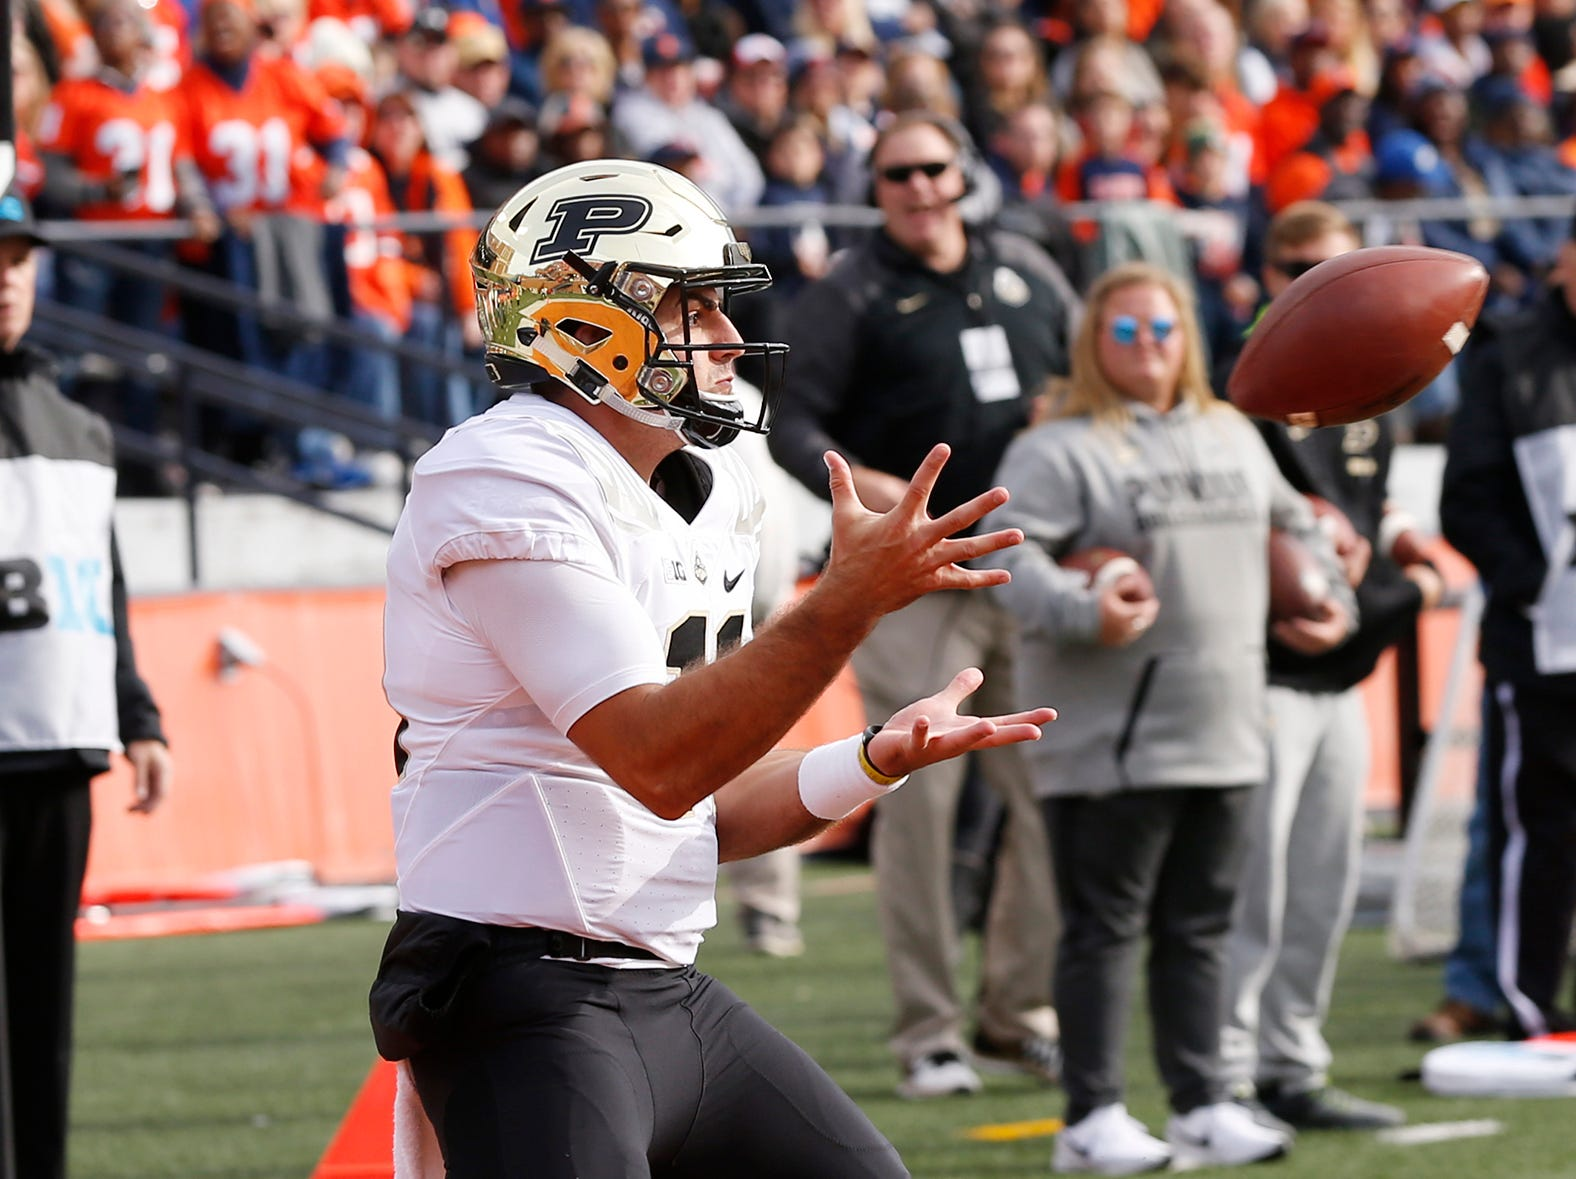 Purdue quarterback David Blough hauls in a touchdown pass on a trick play at 4:06 in the first quarter against Illinois Saturday, October 13, 2018, in Champaign, Illinois. Purdue drubbed Illinois 46-7.